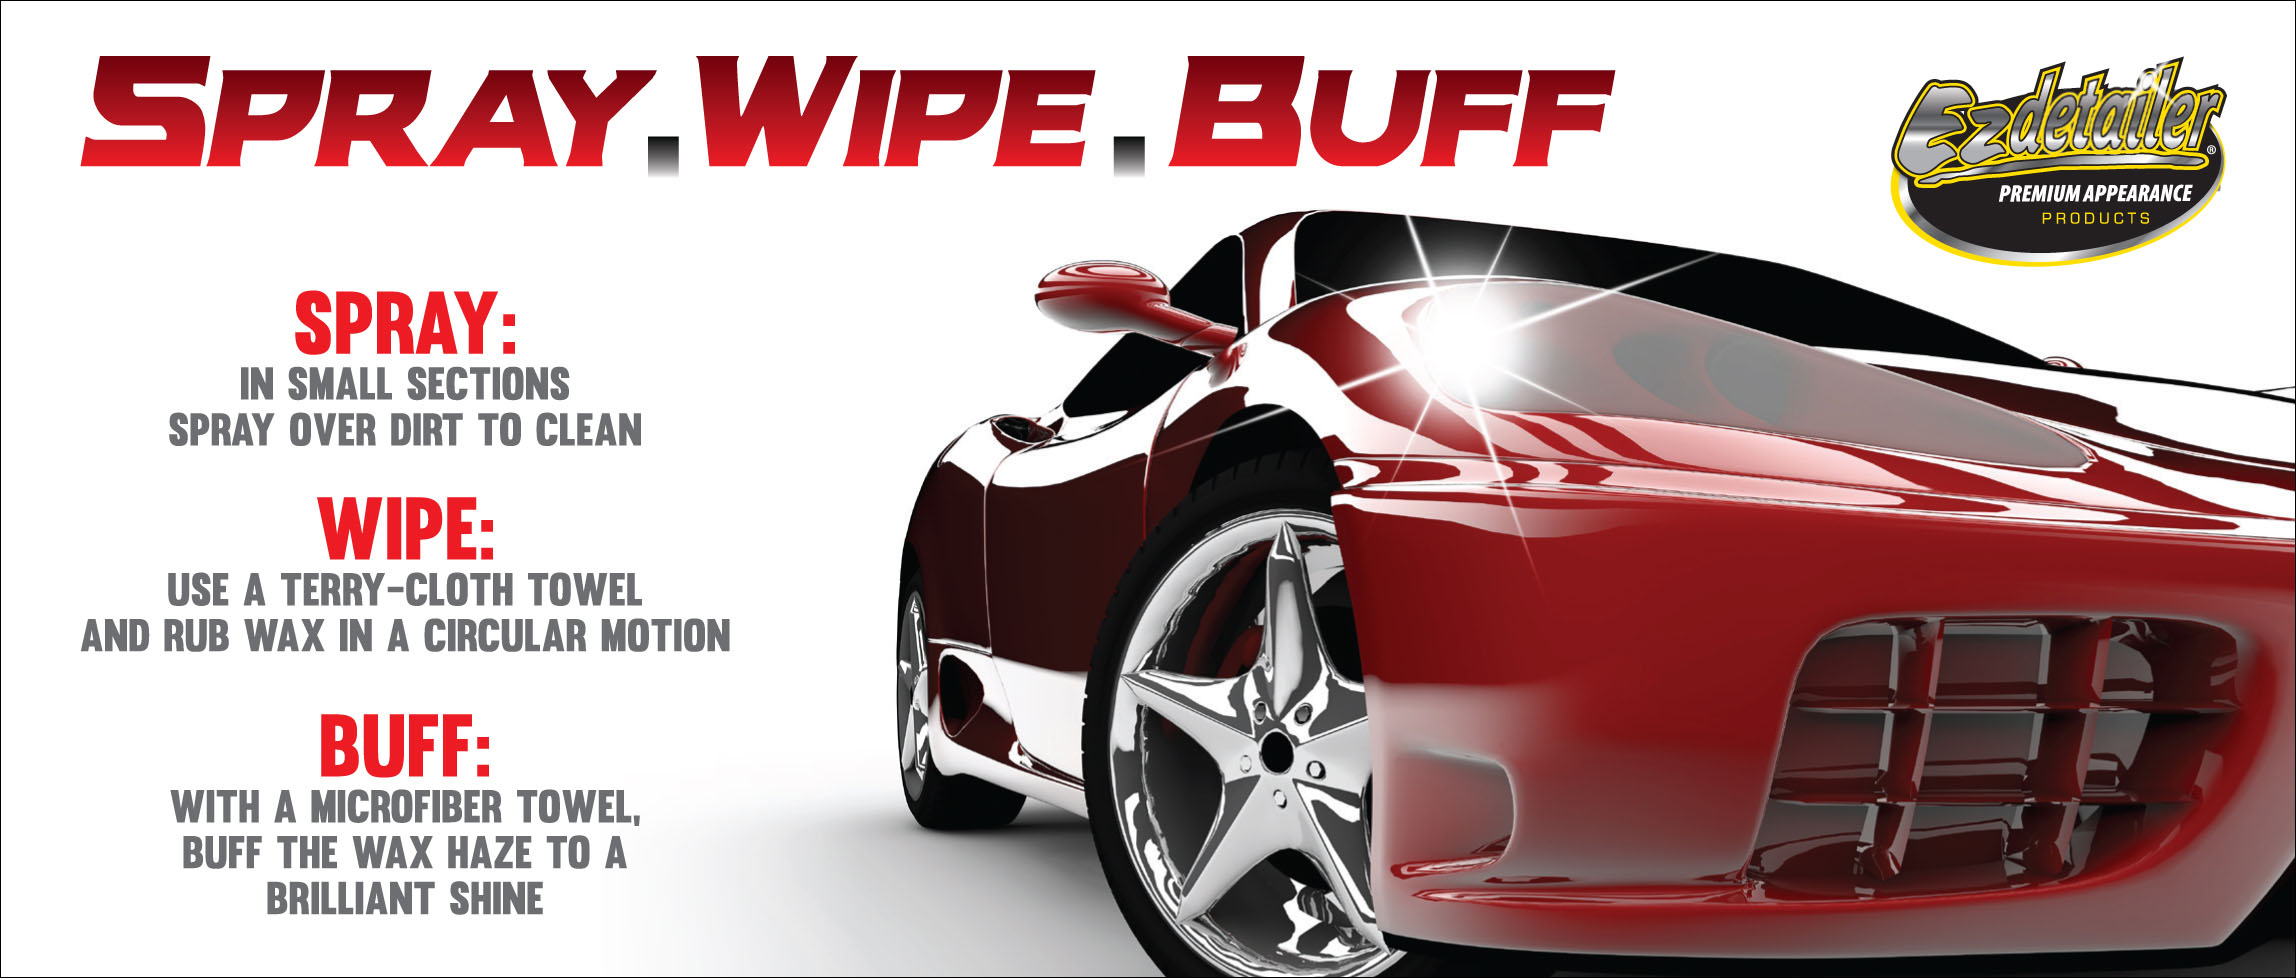 Spray.Wipe.Buff Carnauba Wax Cleaner Instructions